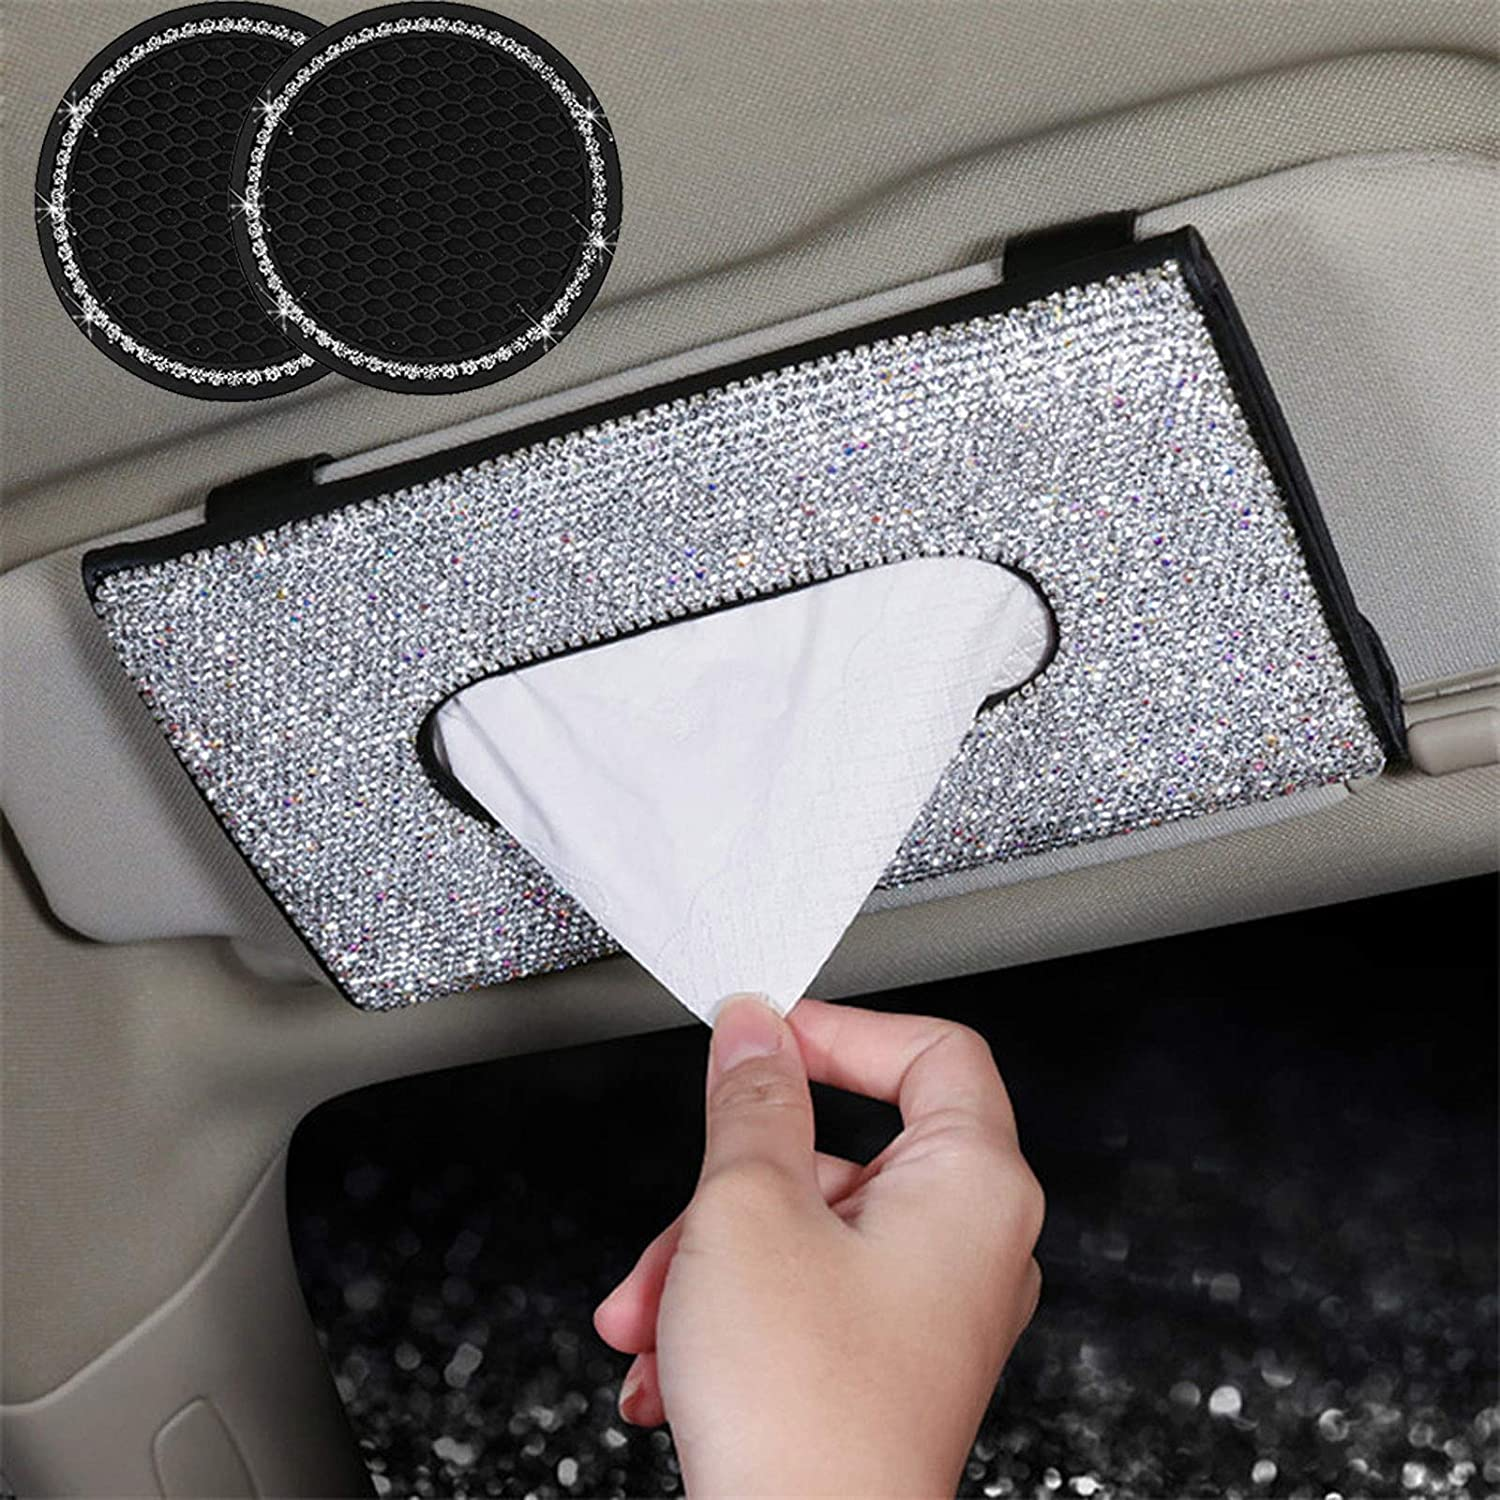 dayutech 3 Pcs Bling Max 49% OFF Car Women Accessories Tissue for Credence